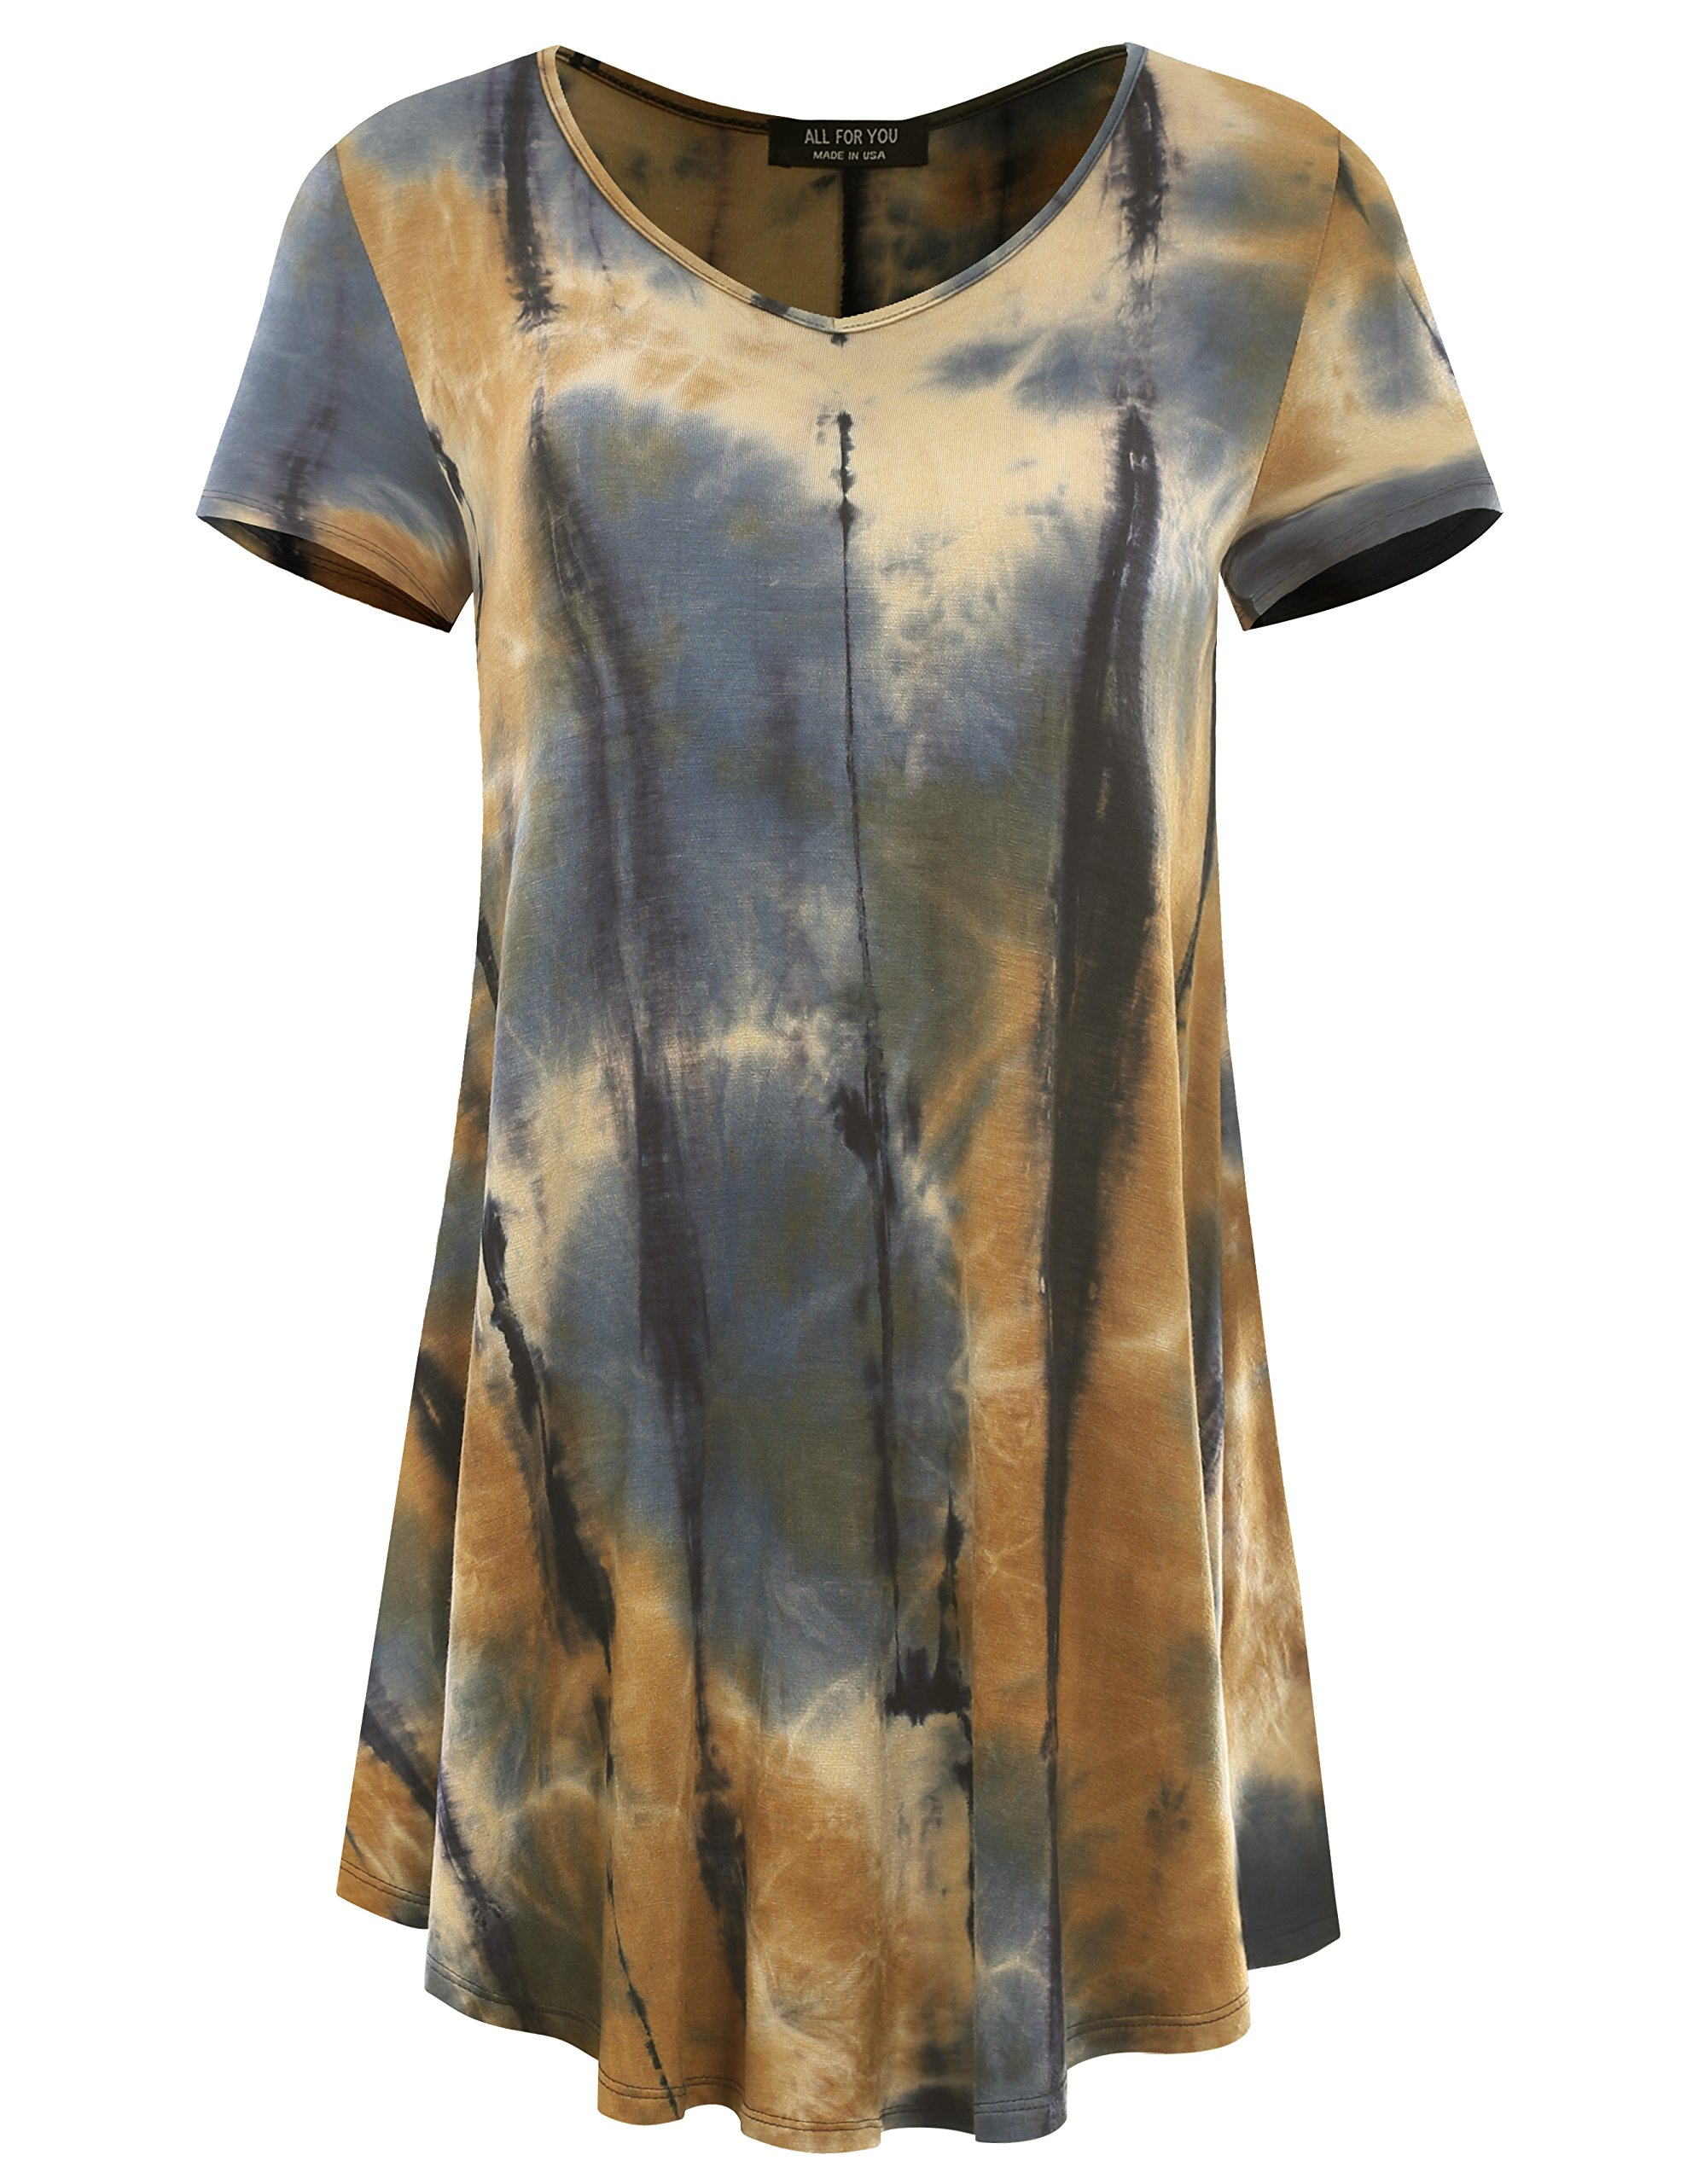 All for You Women's Short Sleeve V-Neck Flare Hem Floral Print Tunic Tie-Dye Taupe 2 X-Large by A.F.Y (Image #1)